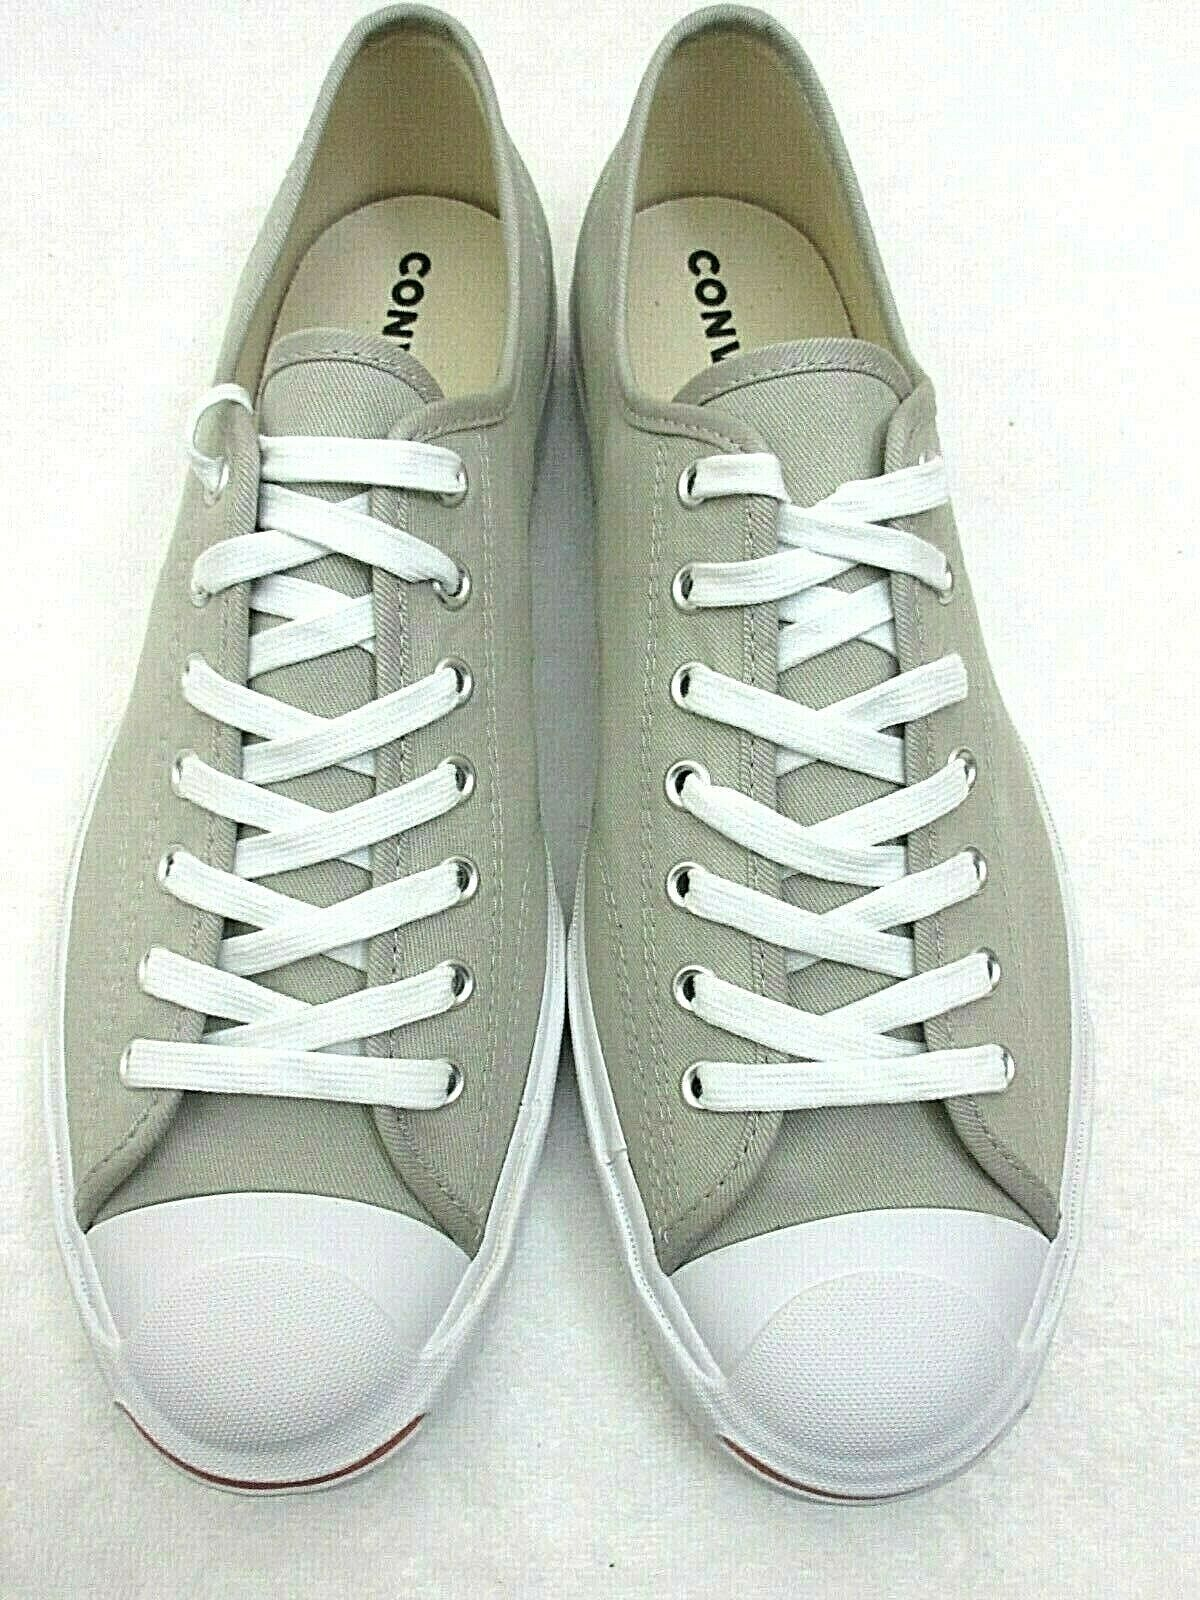 Converse Mens Jack Purcell OX Canvas Birch Bark White Habanero Red Shoes 10.5 image 4